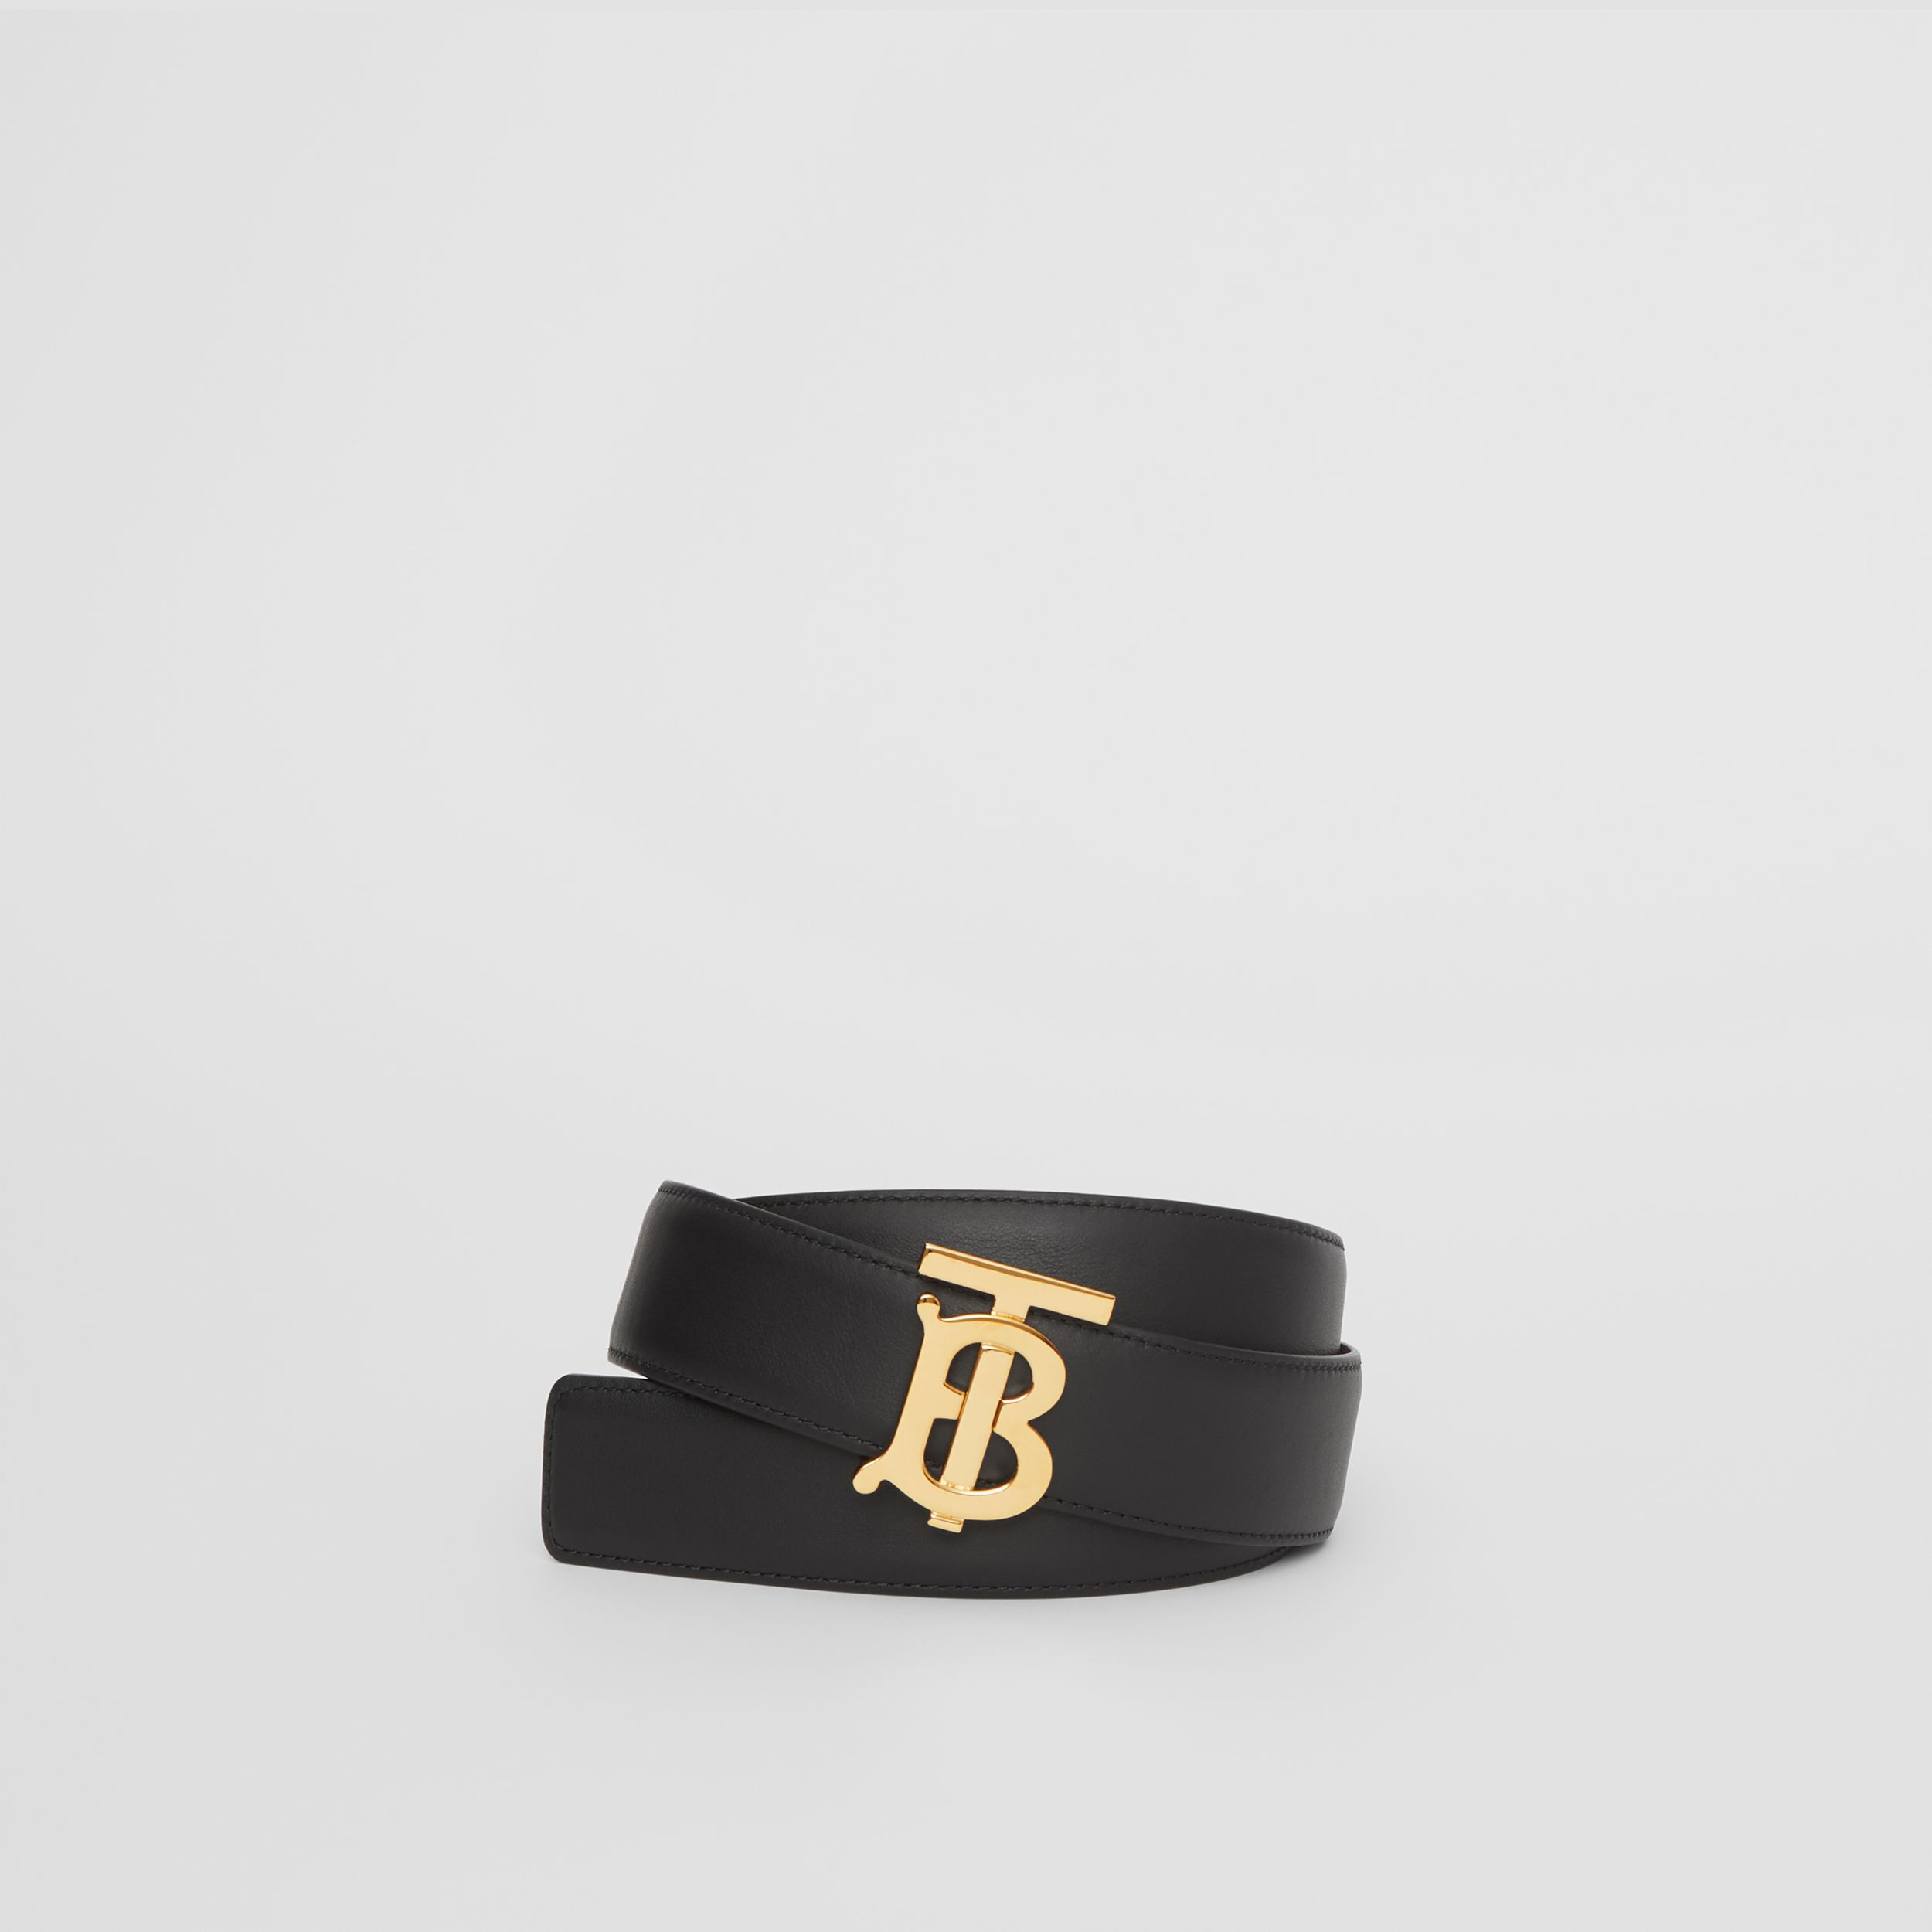 Reversible Monogram Motif Leather Belt in Black/malt Brown - Women | Burberry - 1